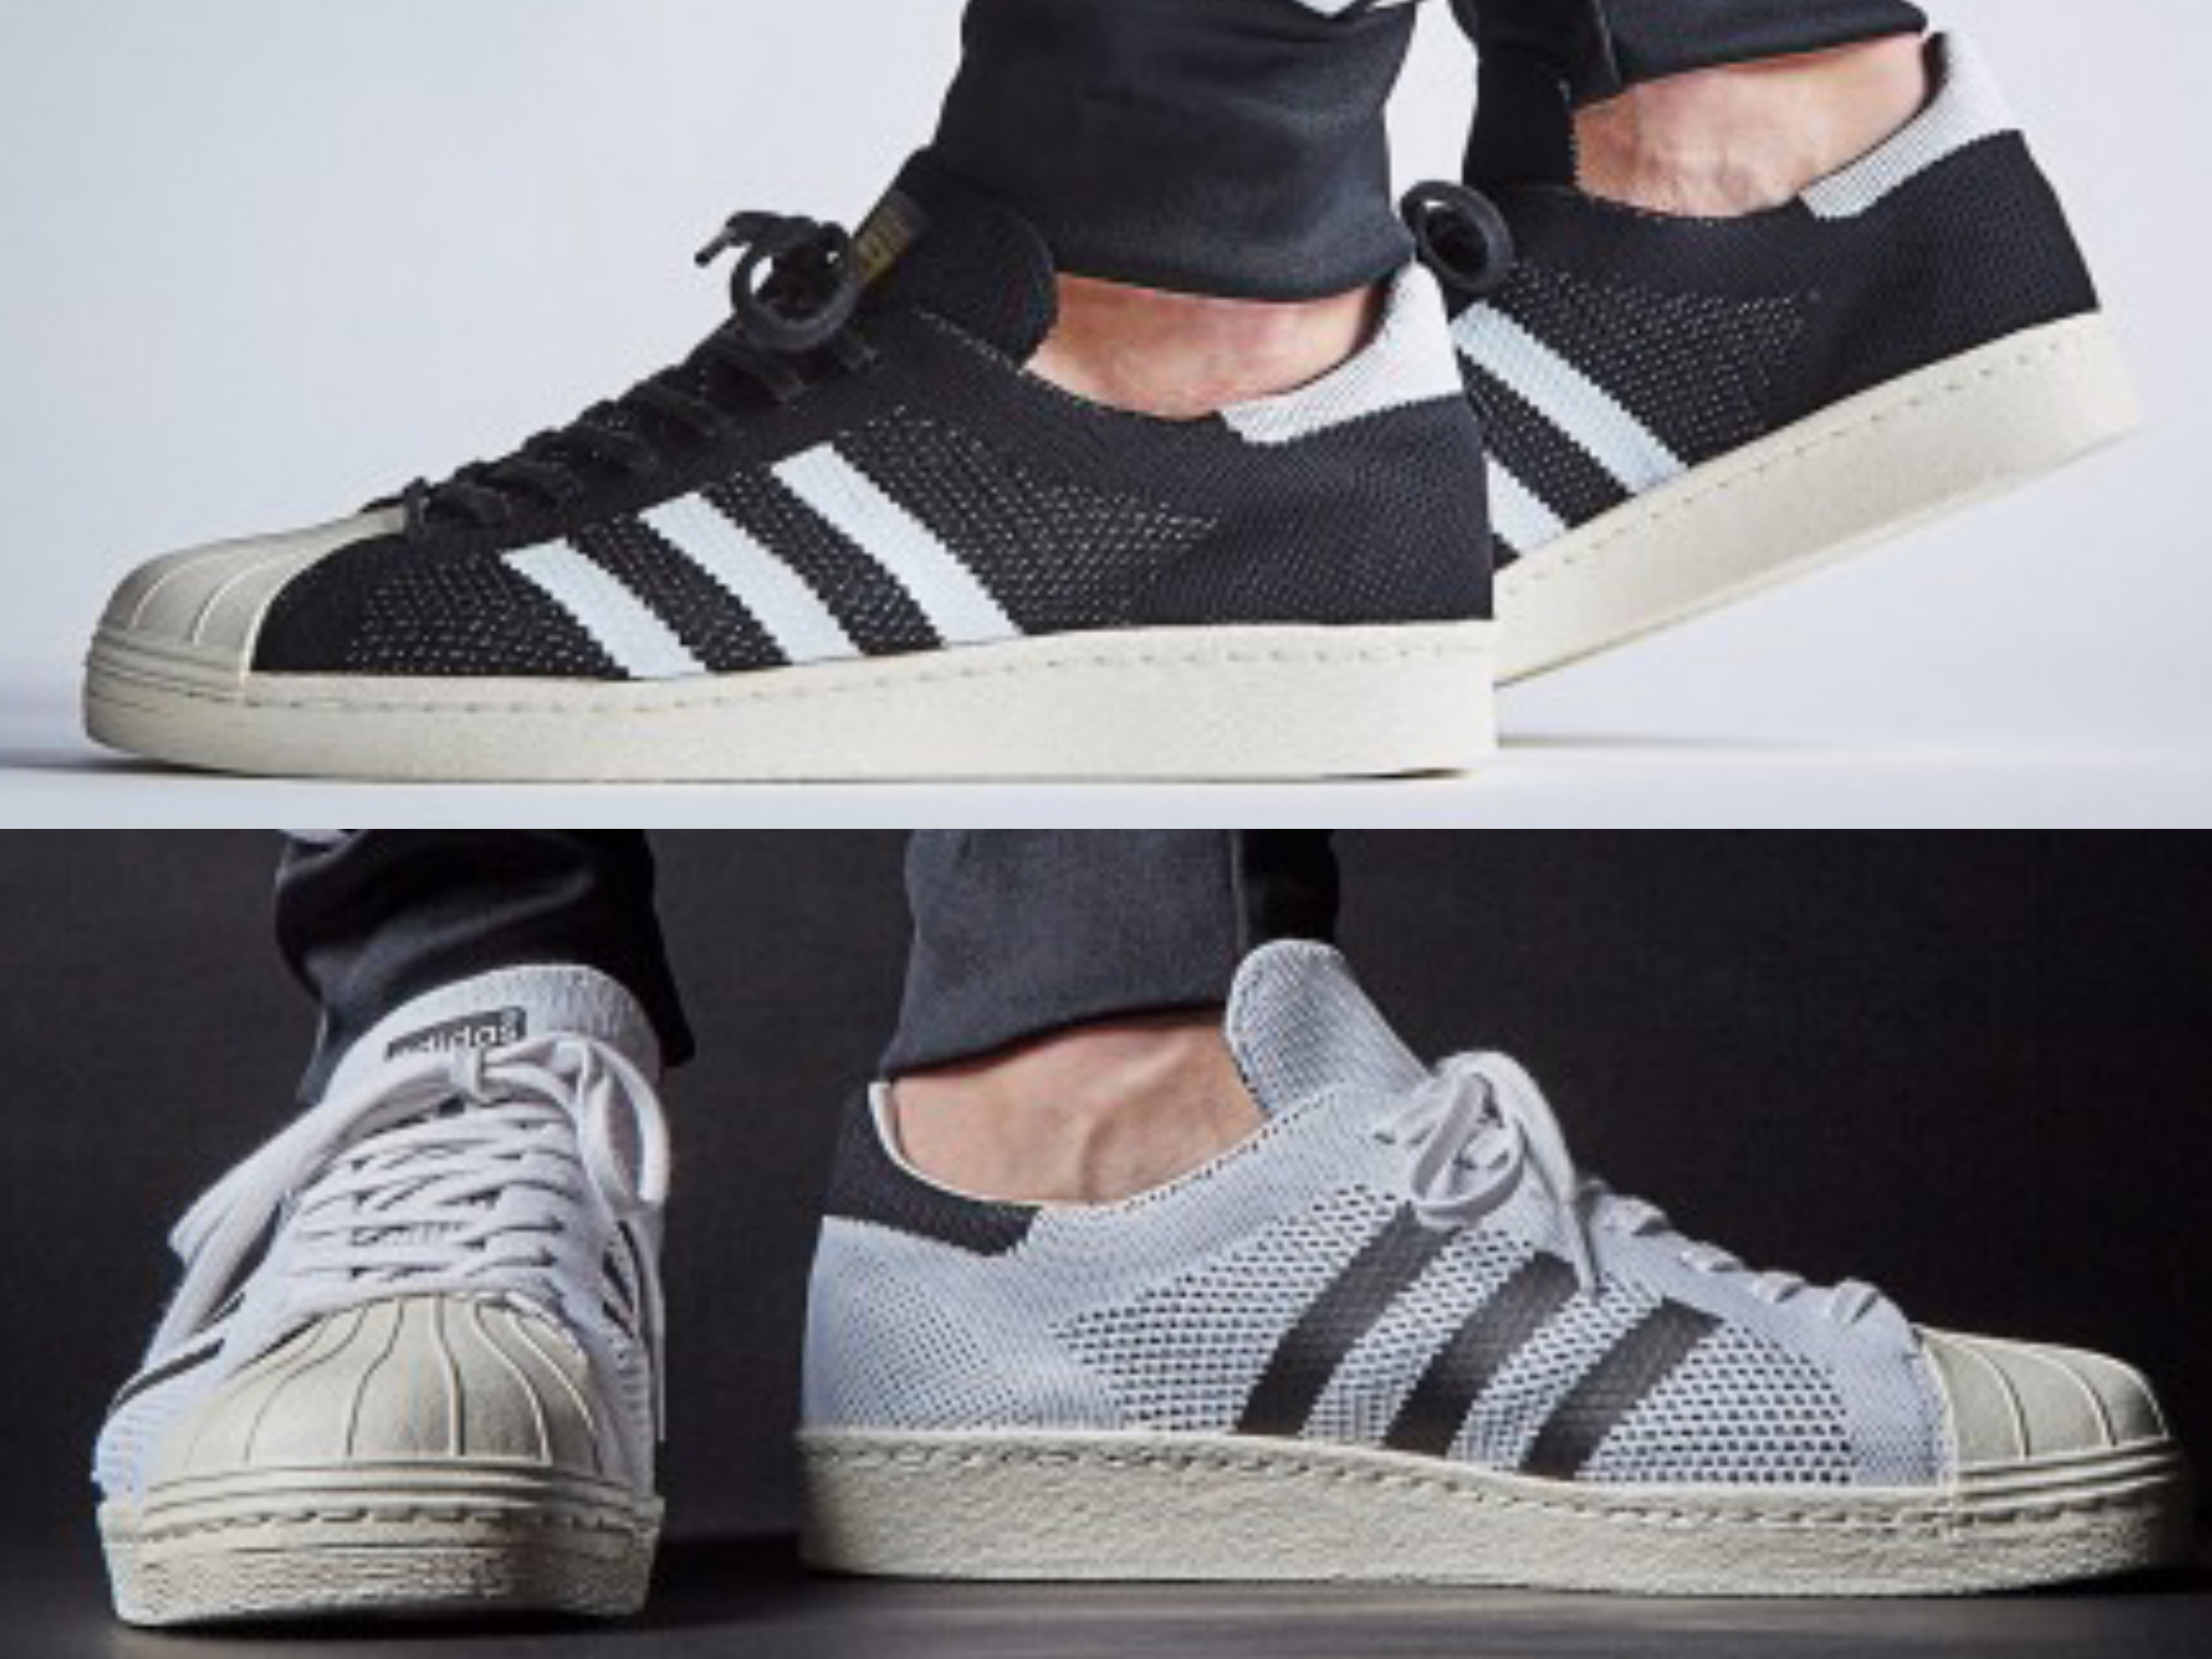 eb21d23bf2fd The adidas Superstar 80s Primeknit Just Dropped in 2 Colorways ...